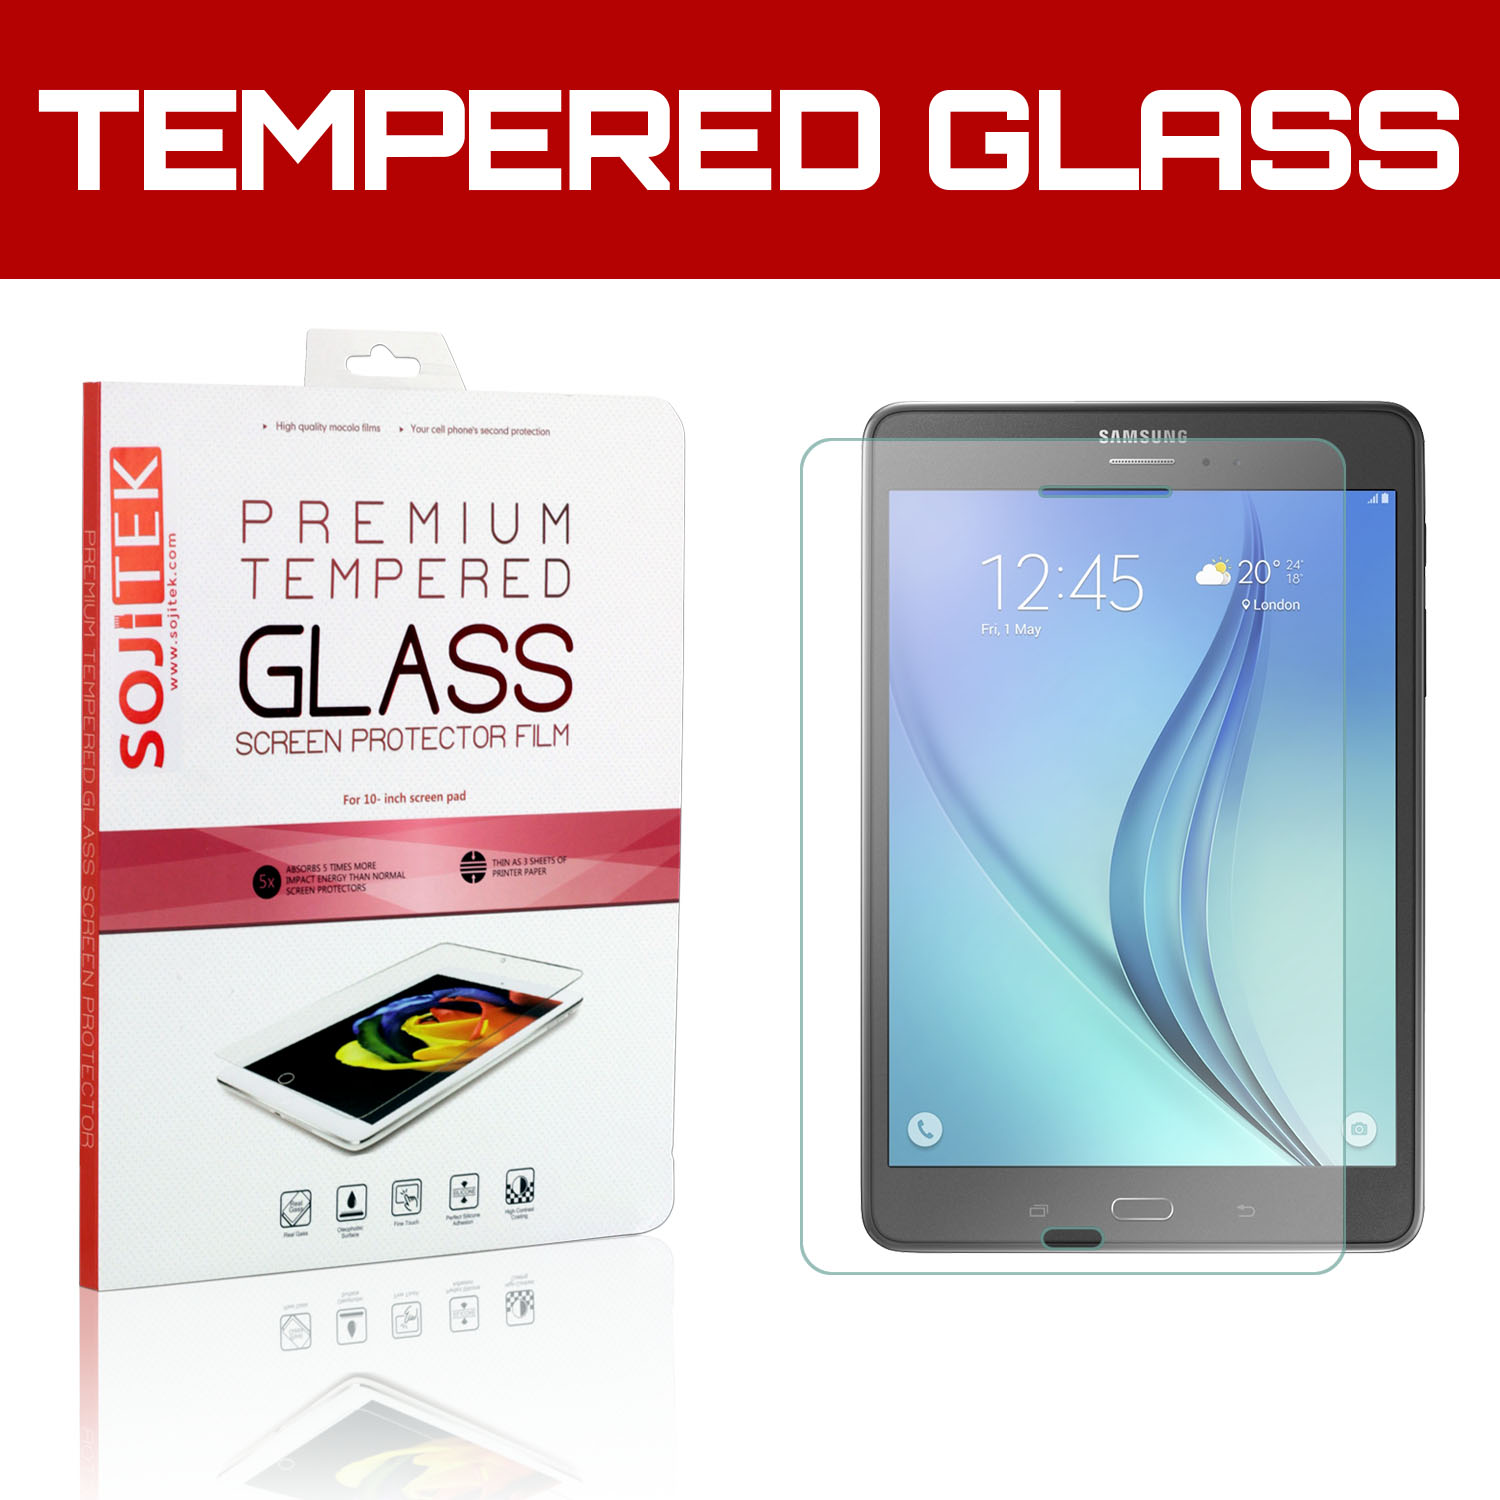 GolemGuard Samsung Galaxy Tab A 8.0 Premium Ballistic Tempered Glass Screen Protector with Lifetime Replacement Warranty - HD Ultra Clear Clarity & Touchscreen Accuracy Smart Film 0.33mm thinness